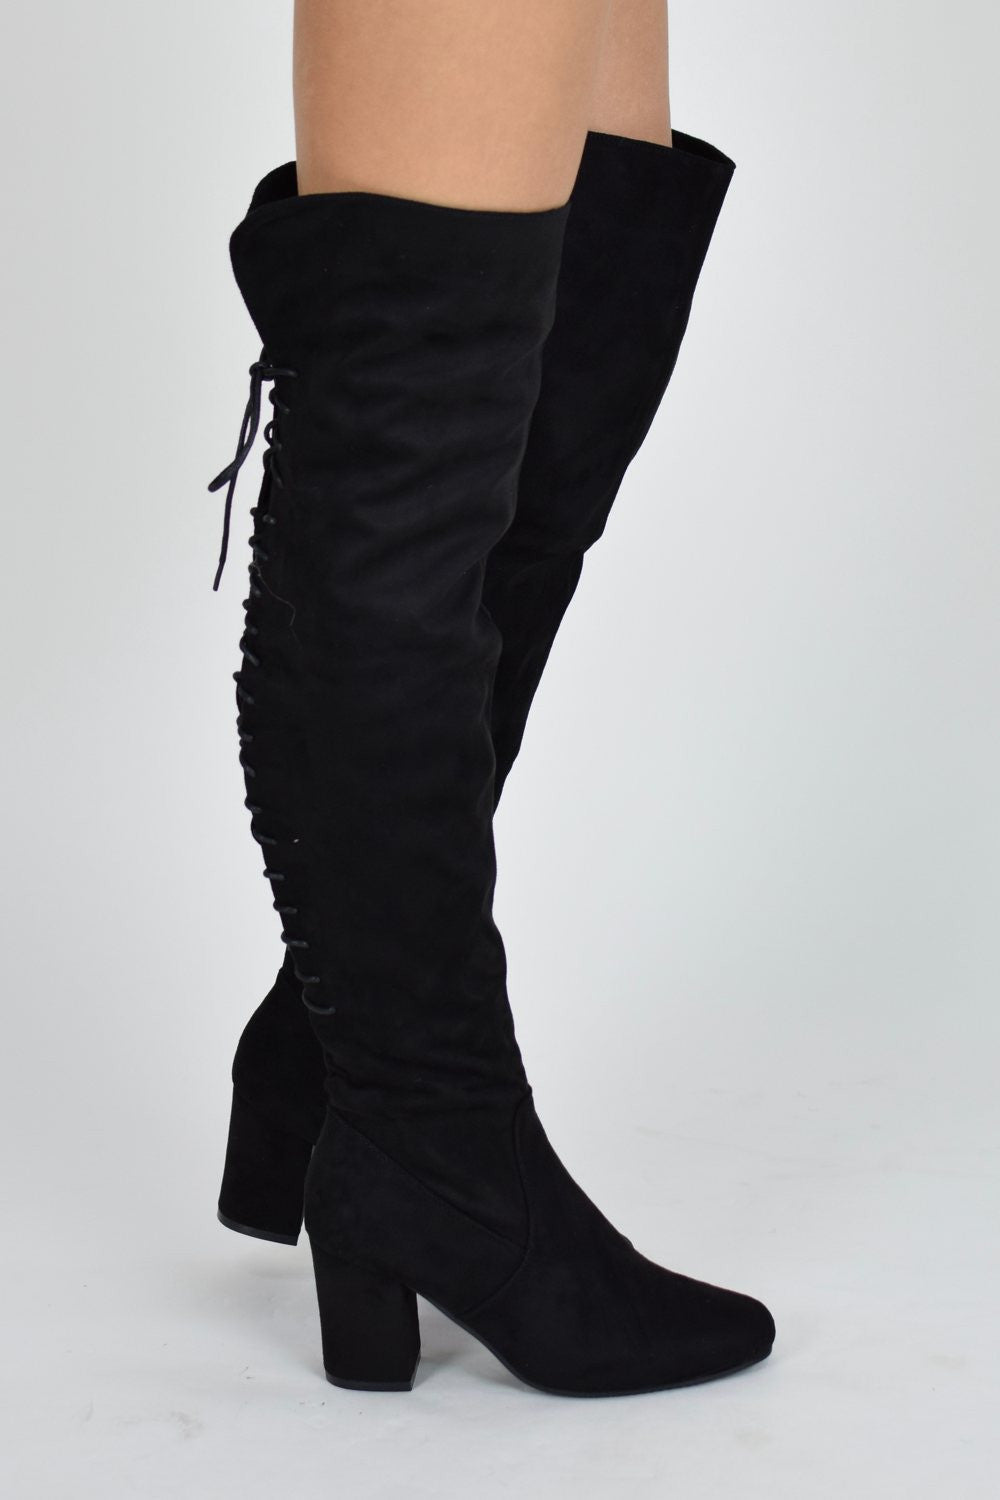 HIGH HOPES Lace Up Block Heel Over knee Boots - Black Suede - AJ Voyage - 3